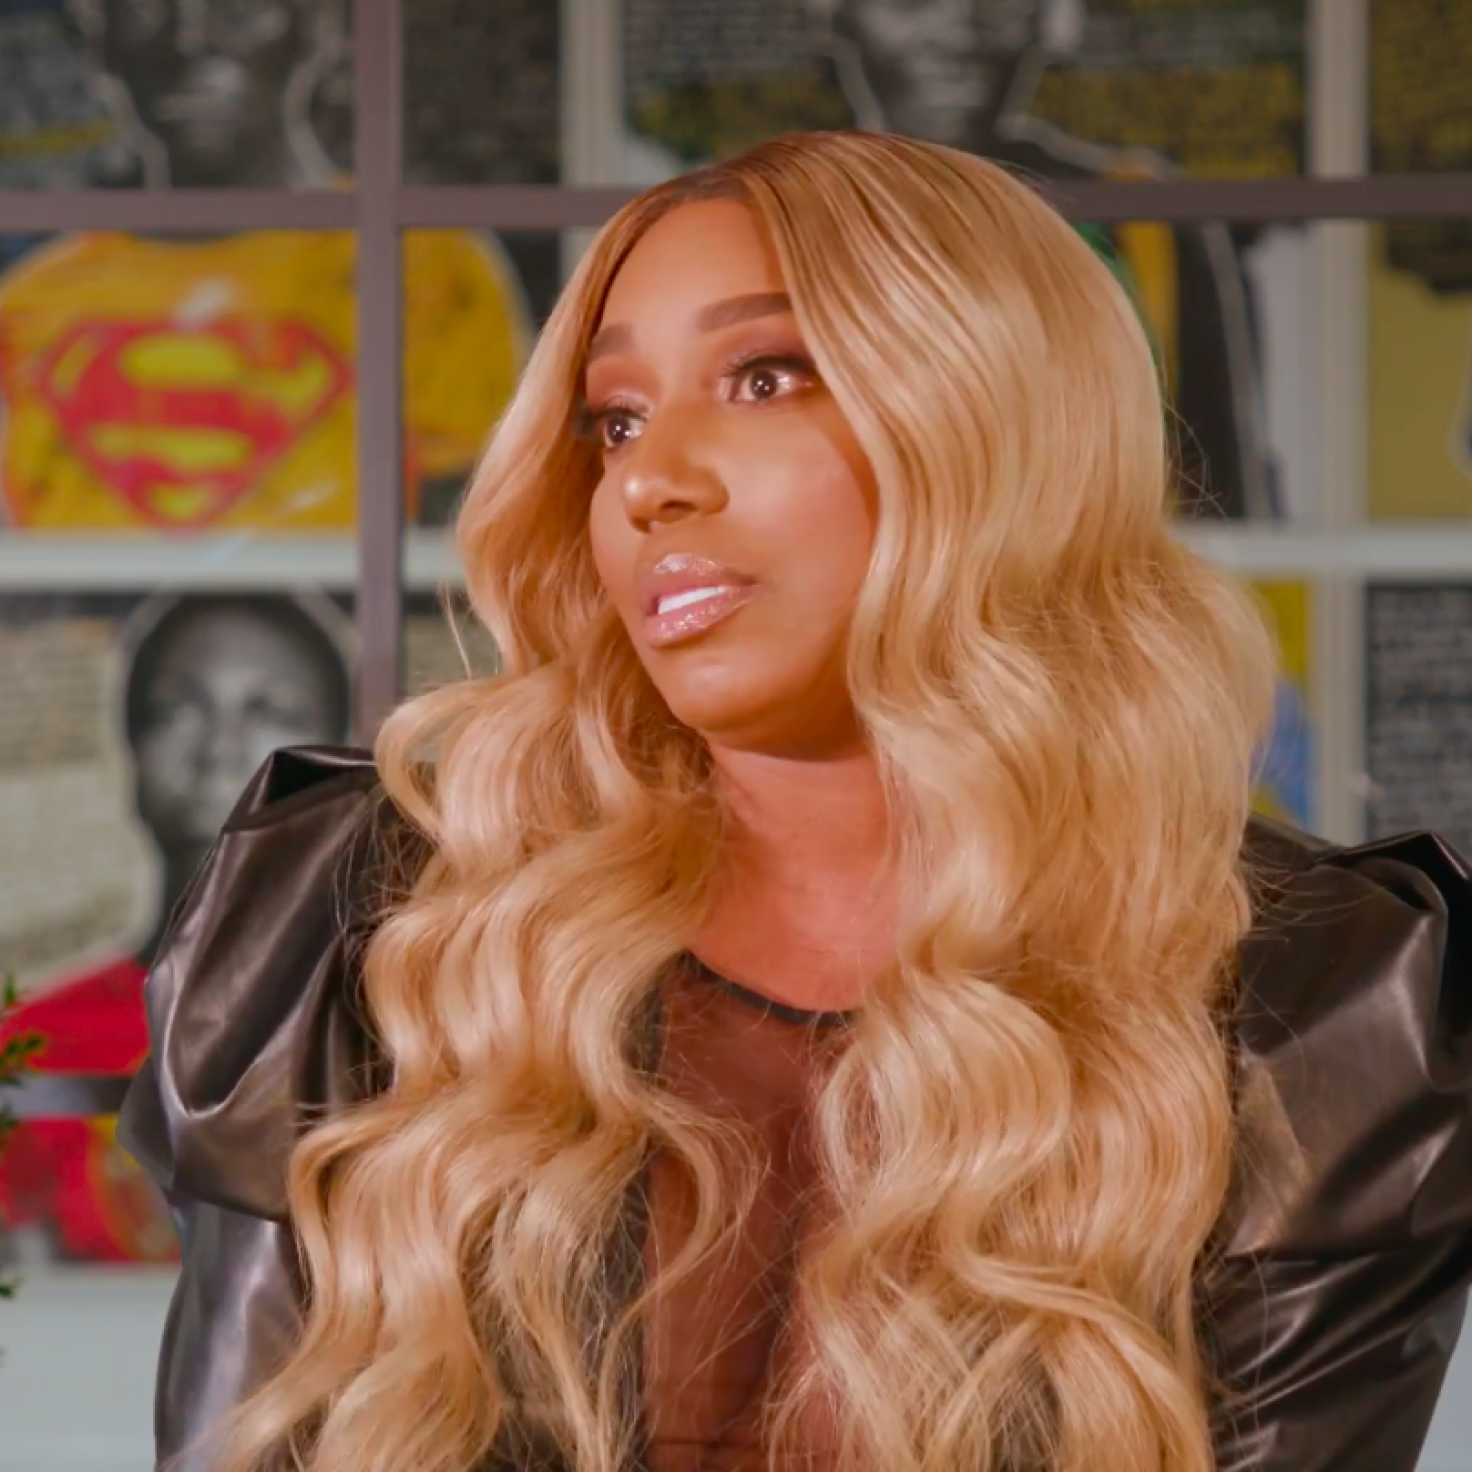 Nene Leakes Talks About That Embarrassing 'RHOA' Episode With Kenya Moore's Husband, Marc Daly